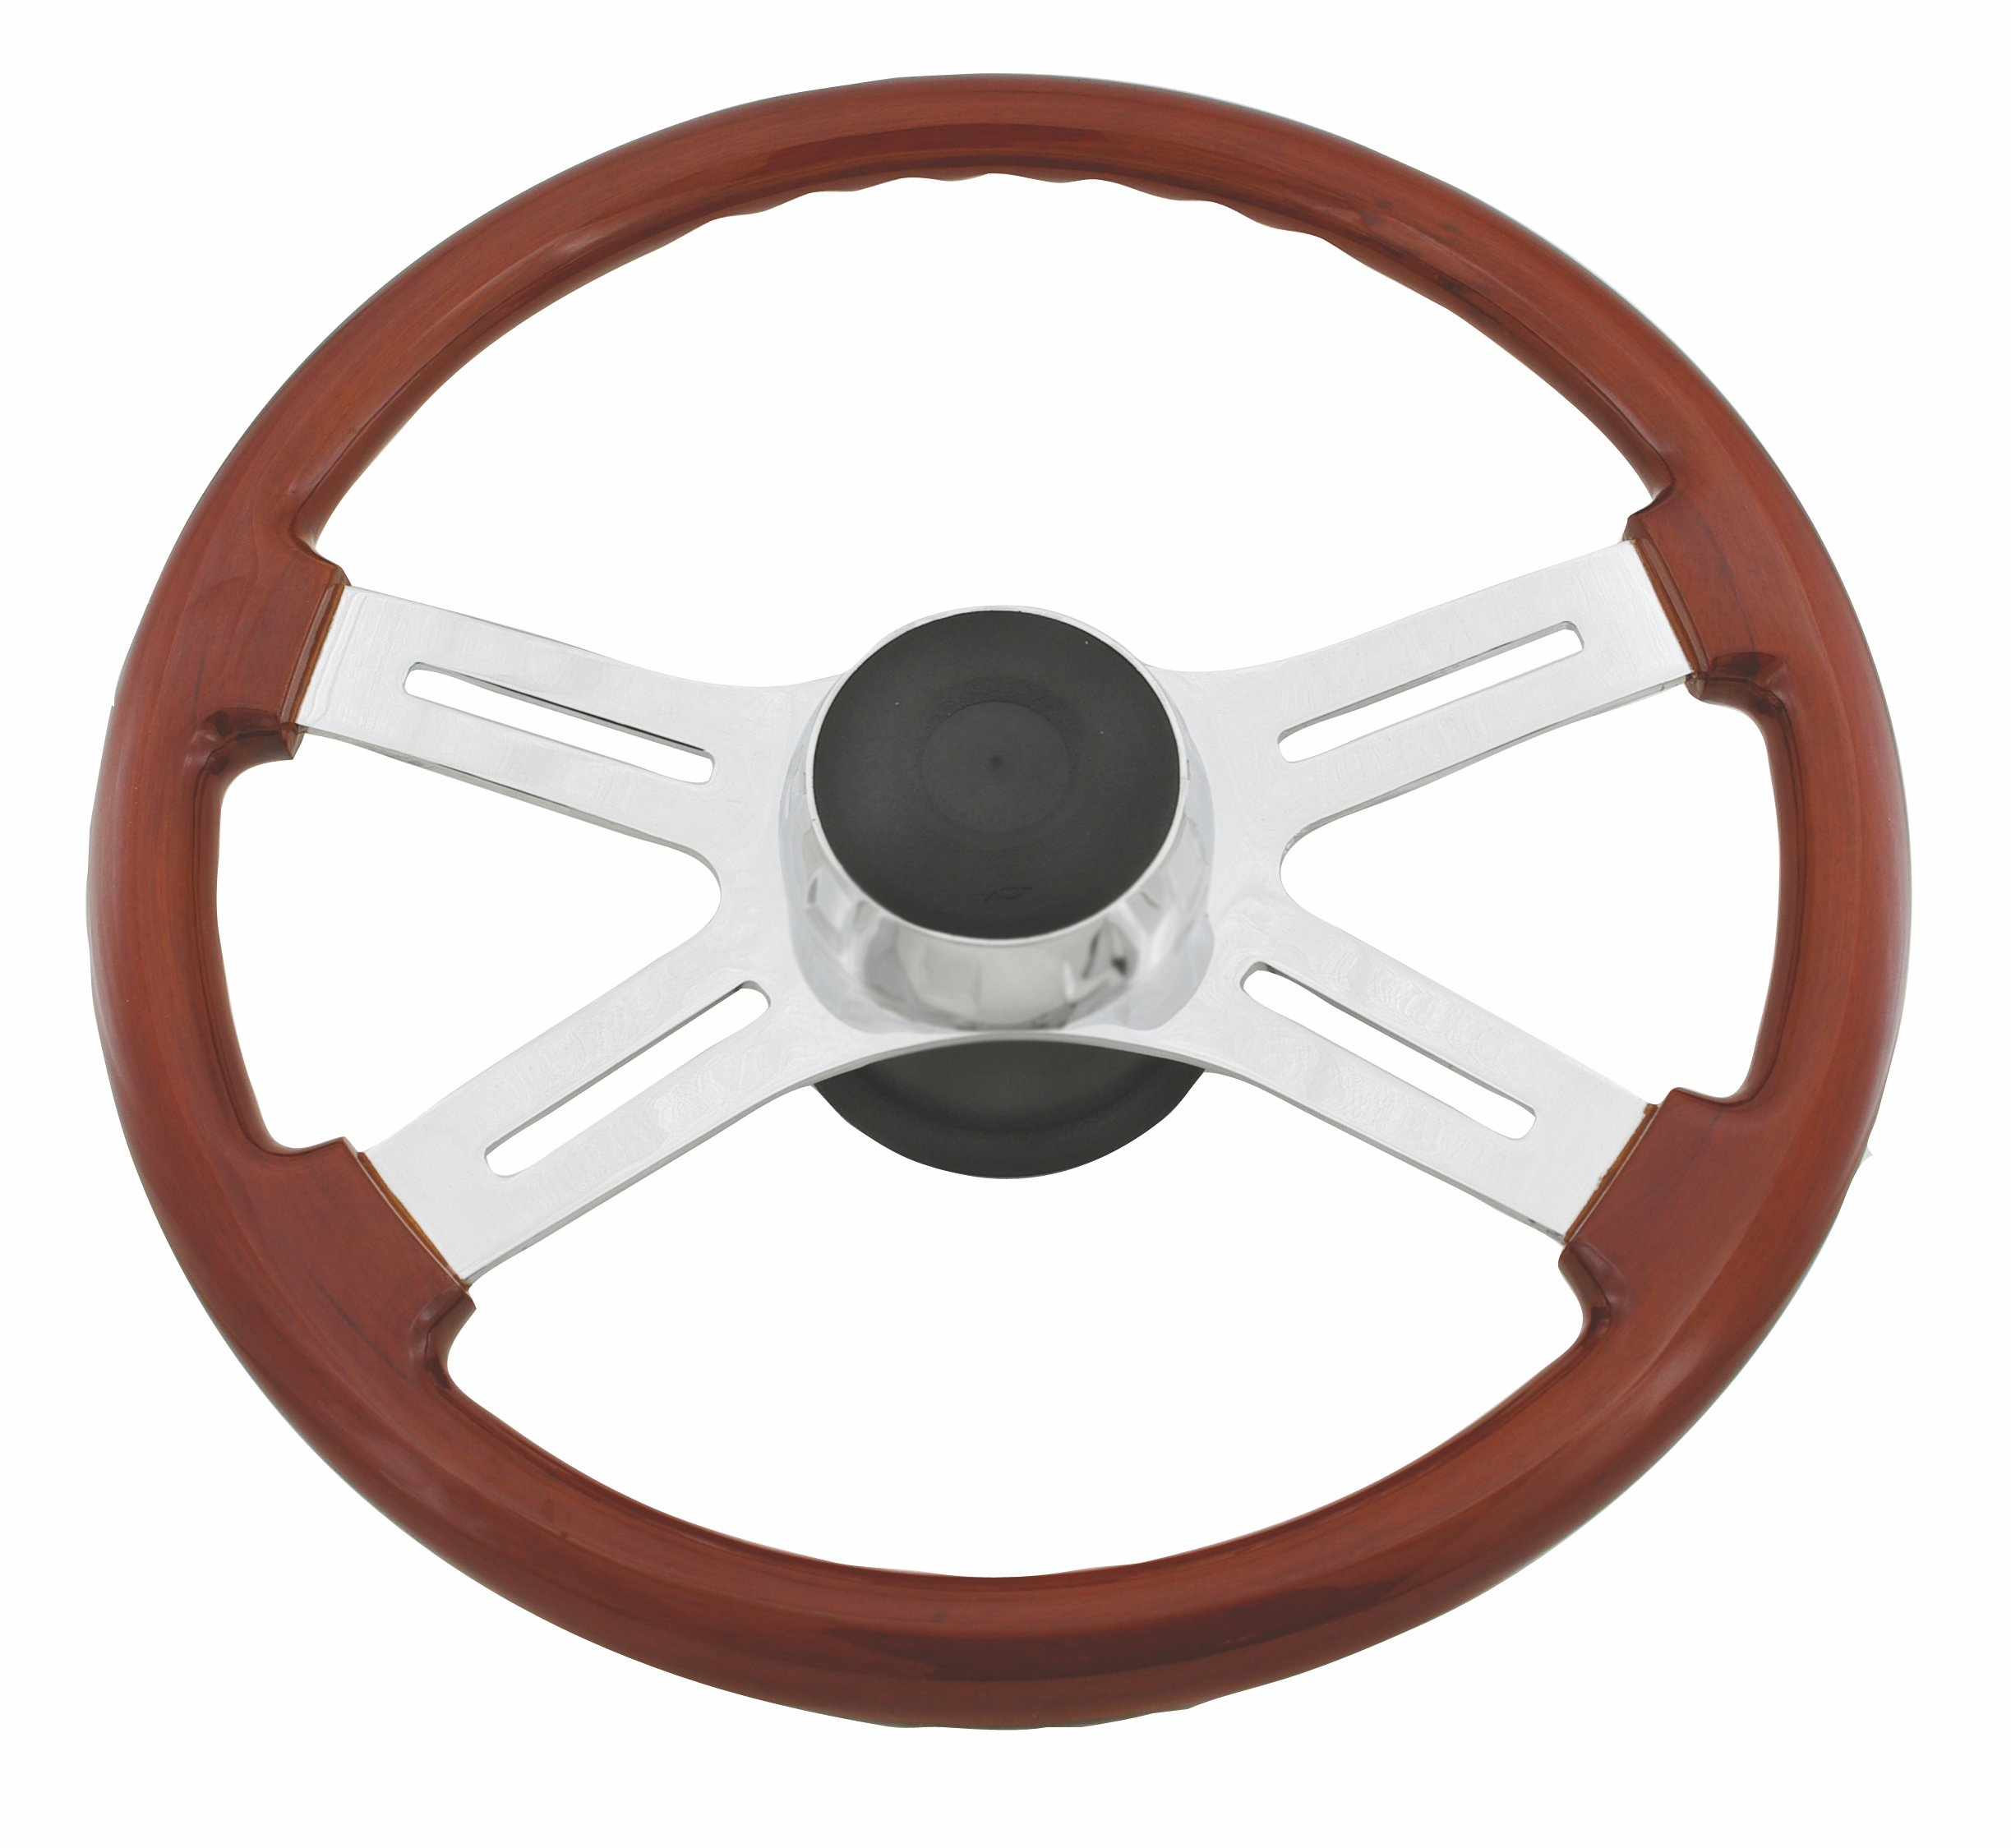 Woody's WP-SWKW9701 Rosewood Chrome Truck Steering Wheel (Beautiful African Hardwood) by Woody's